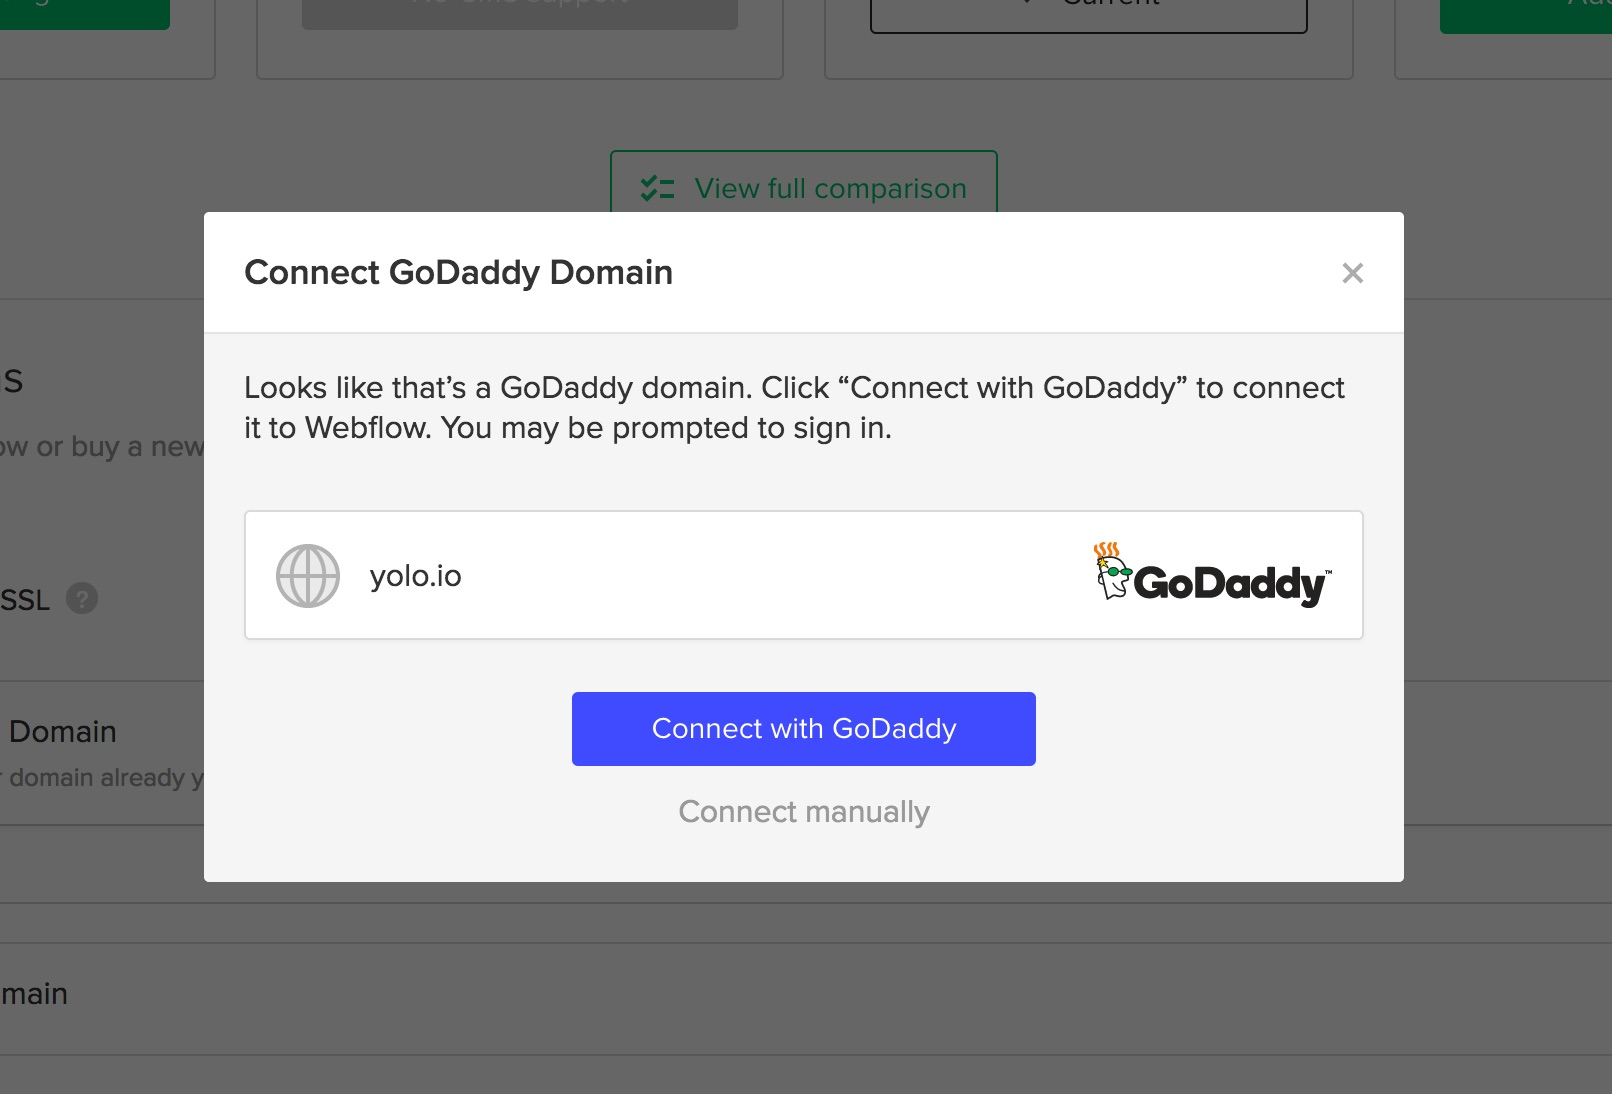 Click connect with GoDaddy to login to your account.